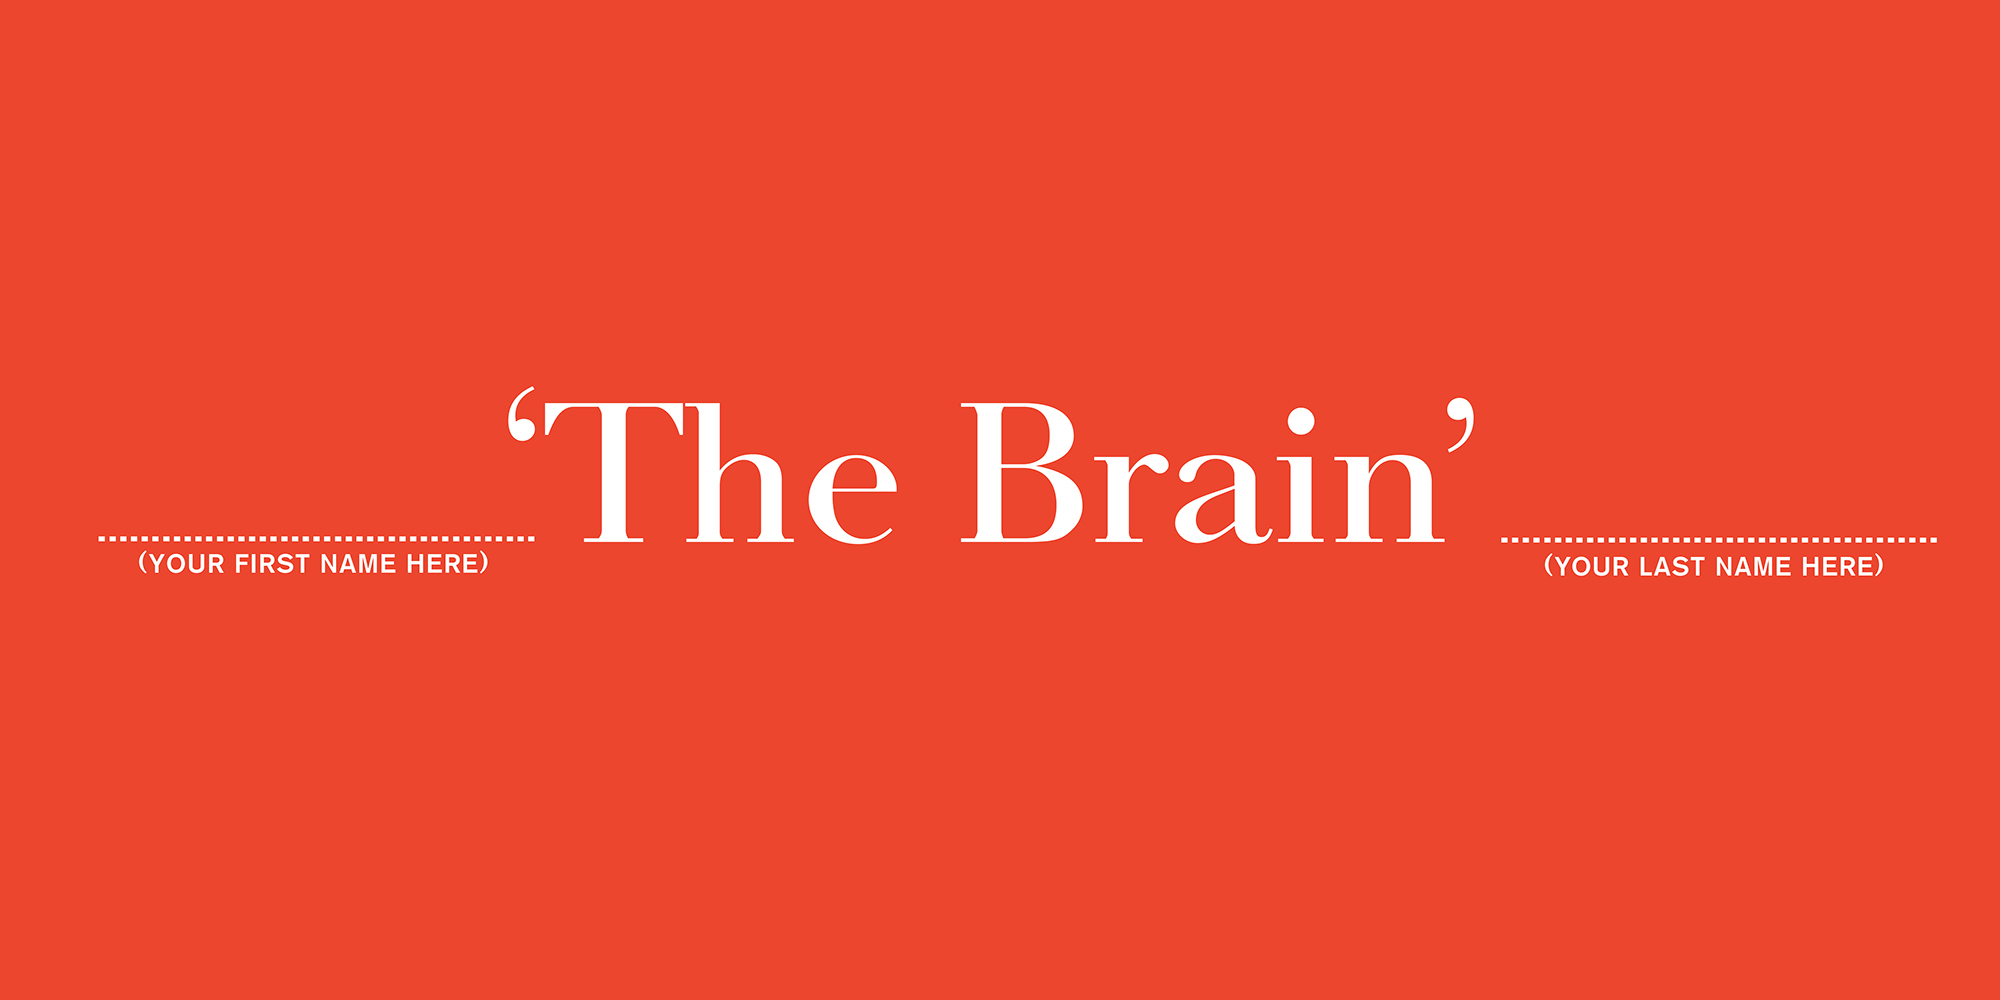 'The Brain' The Economist, Dave Dye, AMV_BBDO